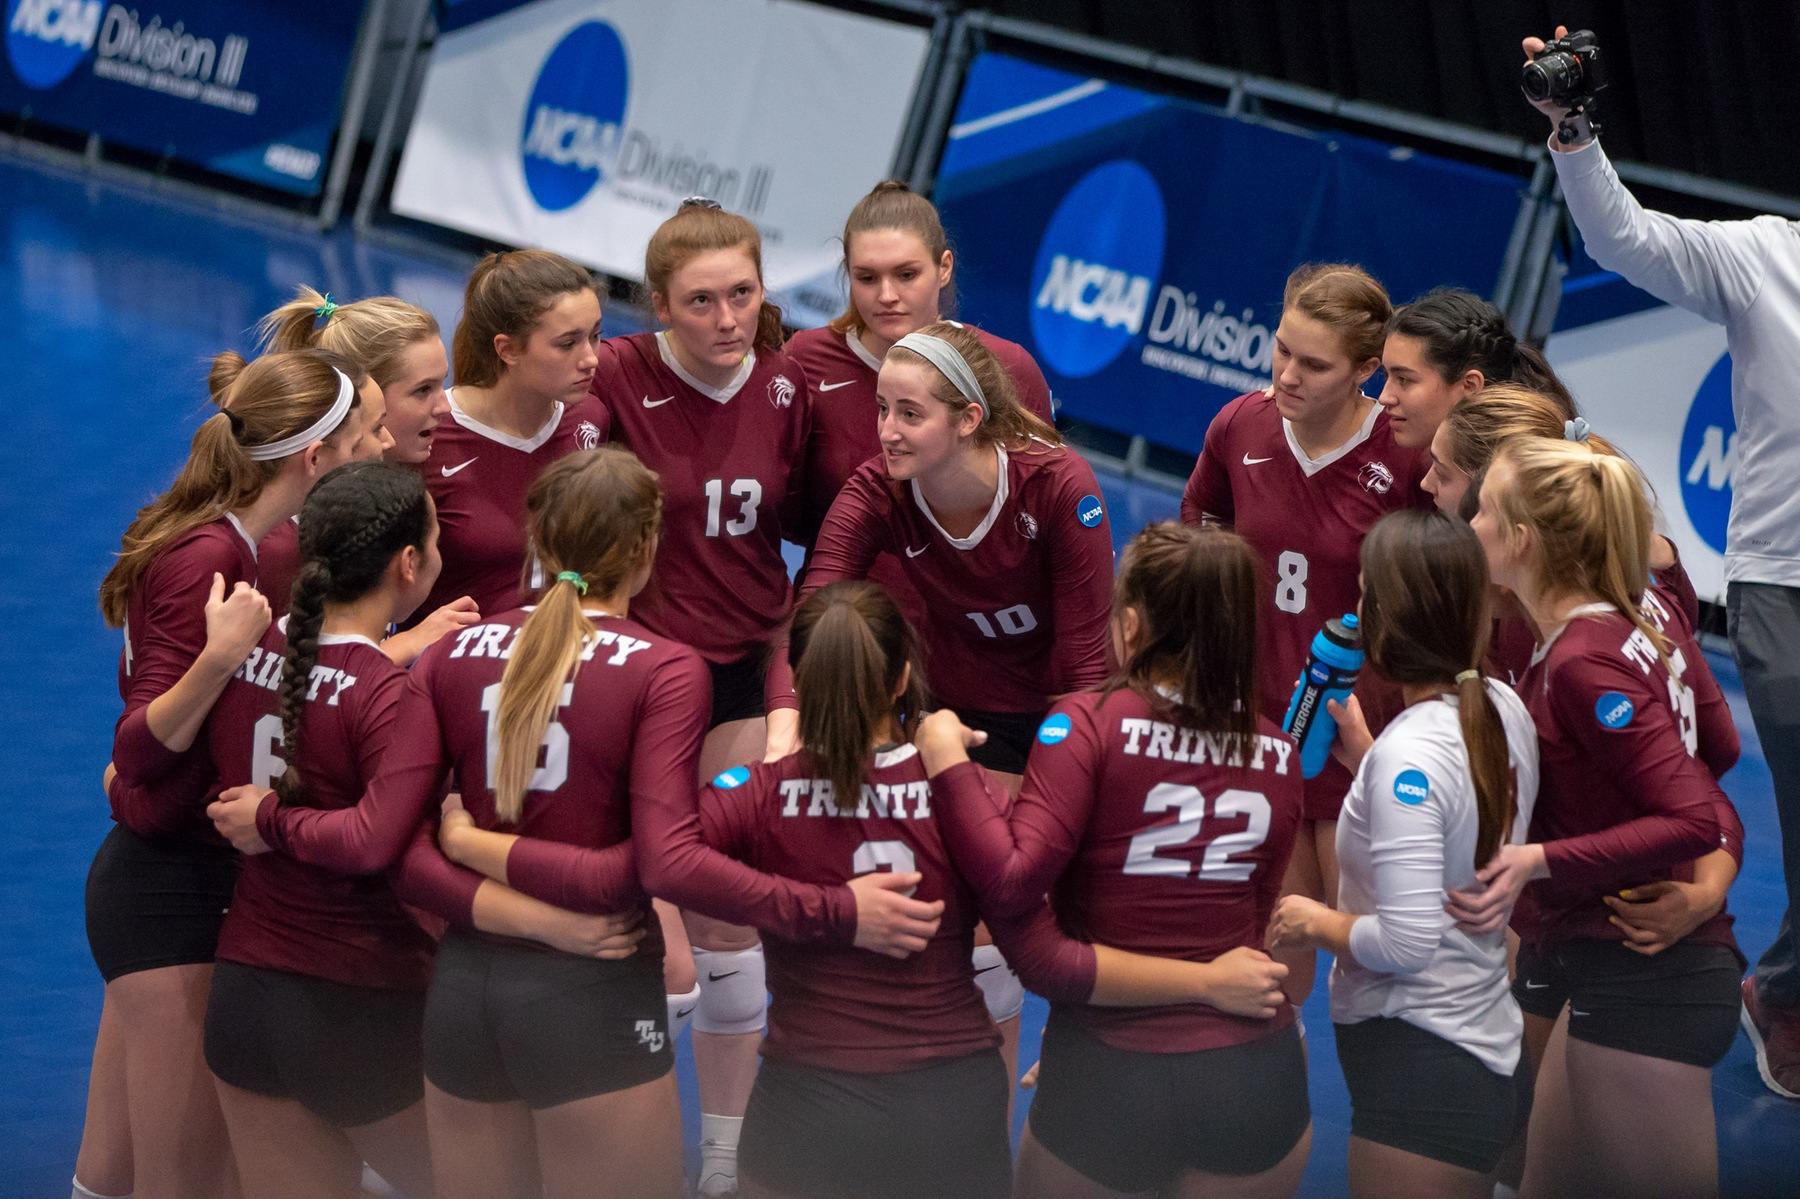 #7 Trinity Volleyball Falls to #6 Johns Hopkins in NCAA Semifinals